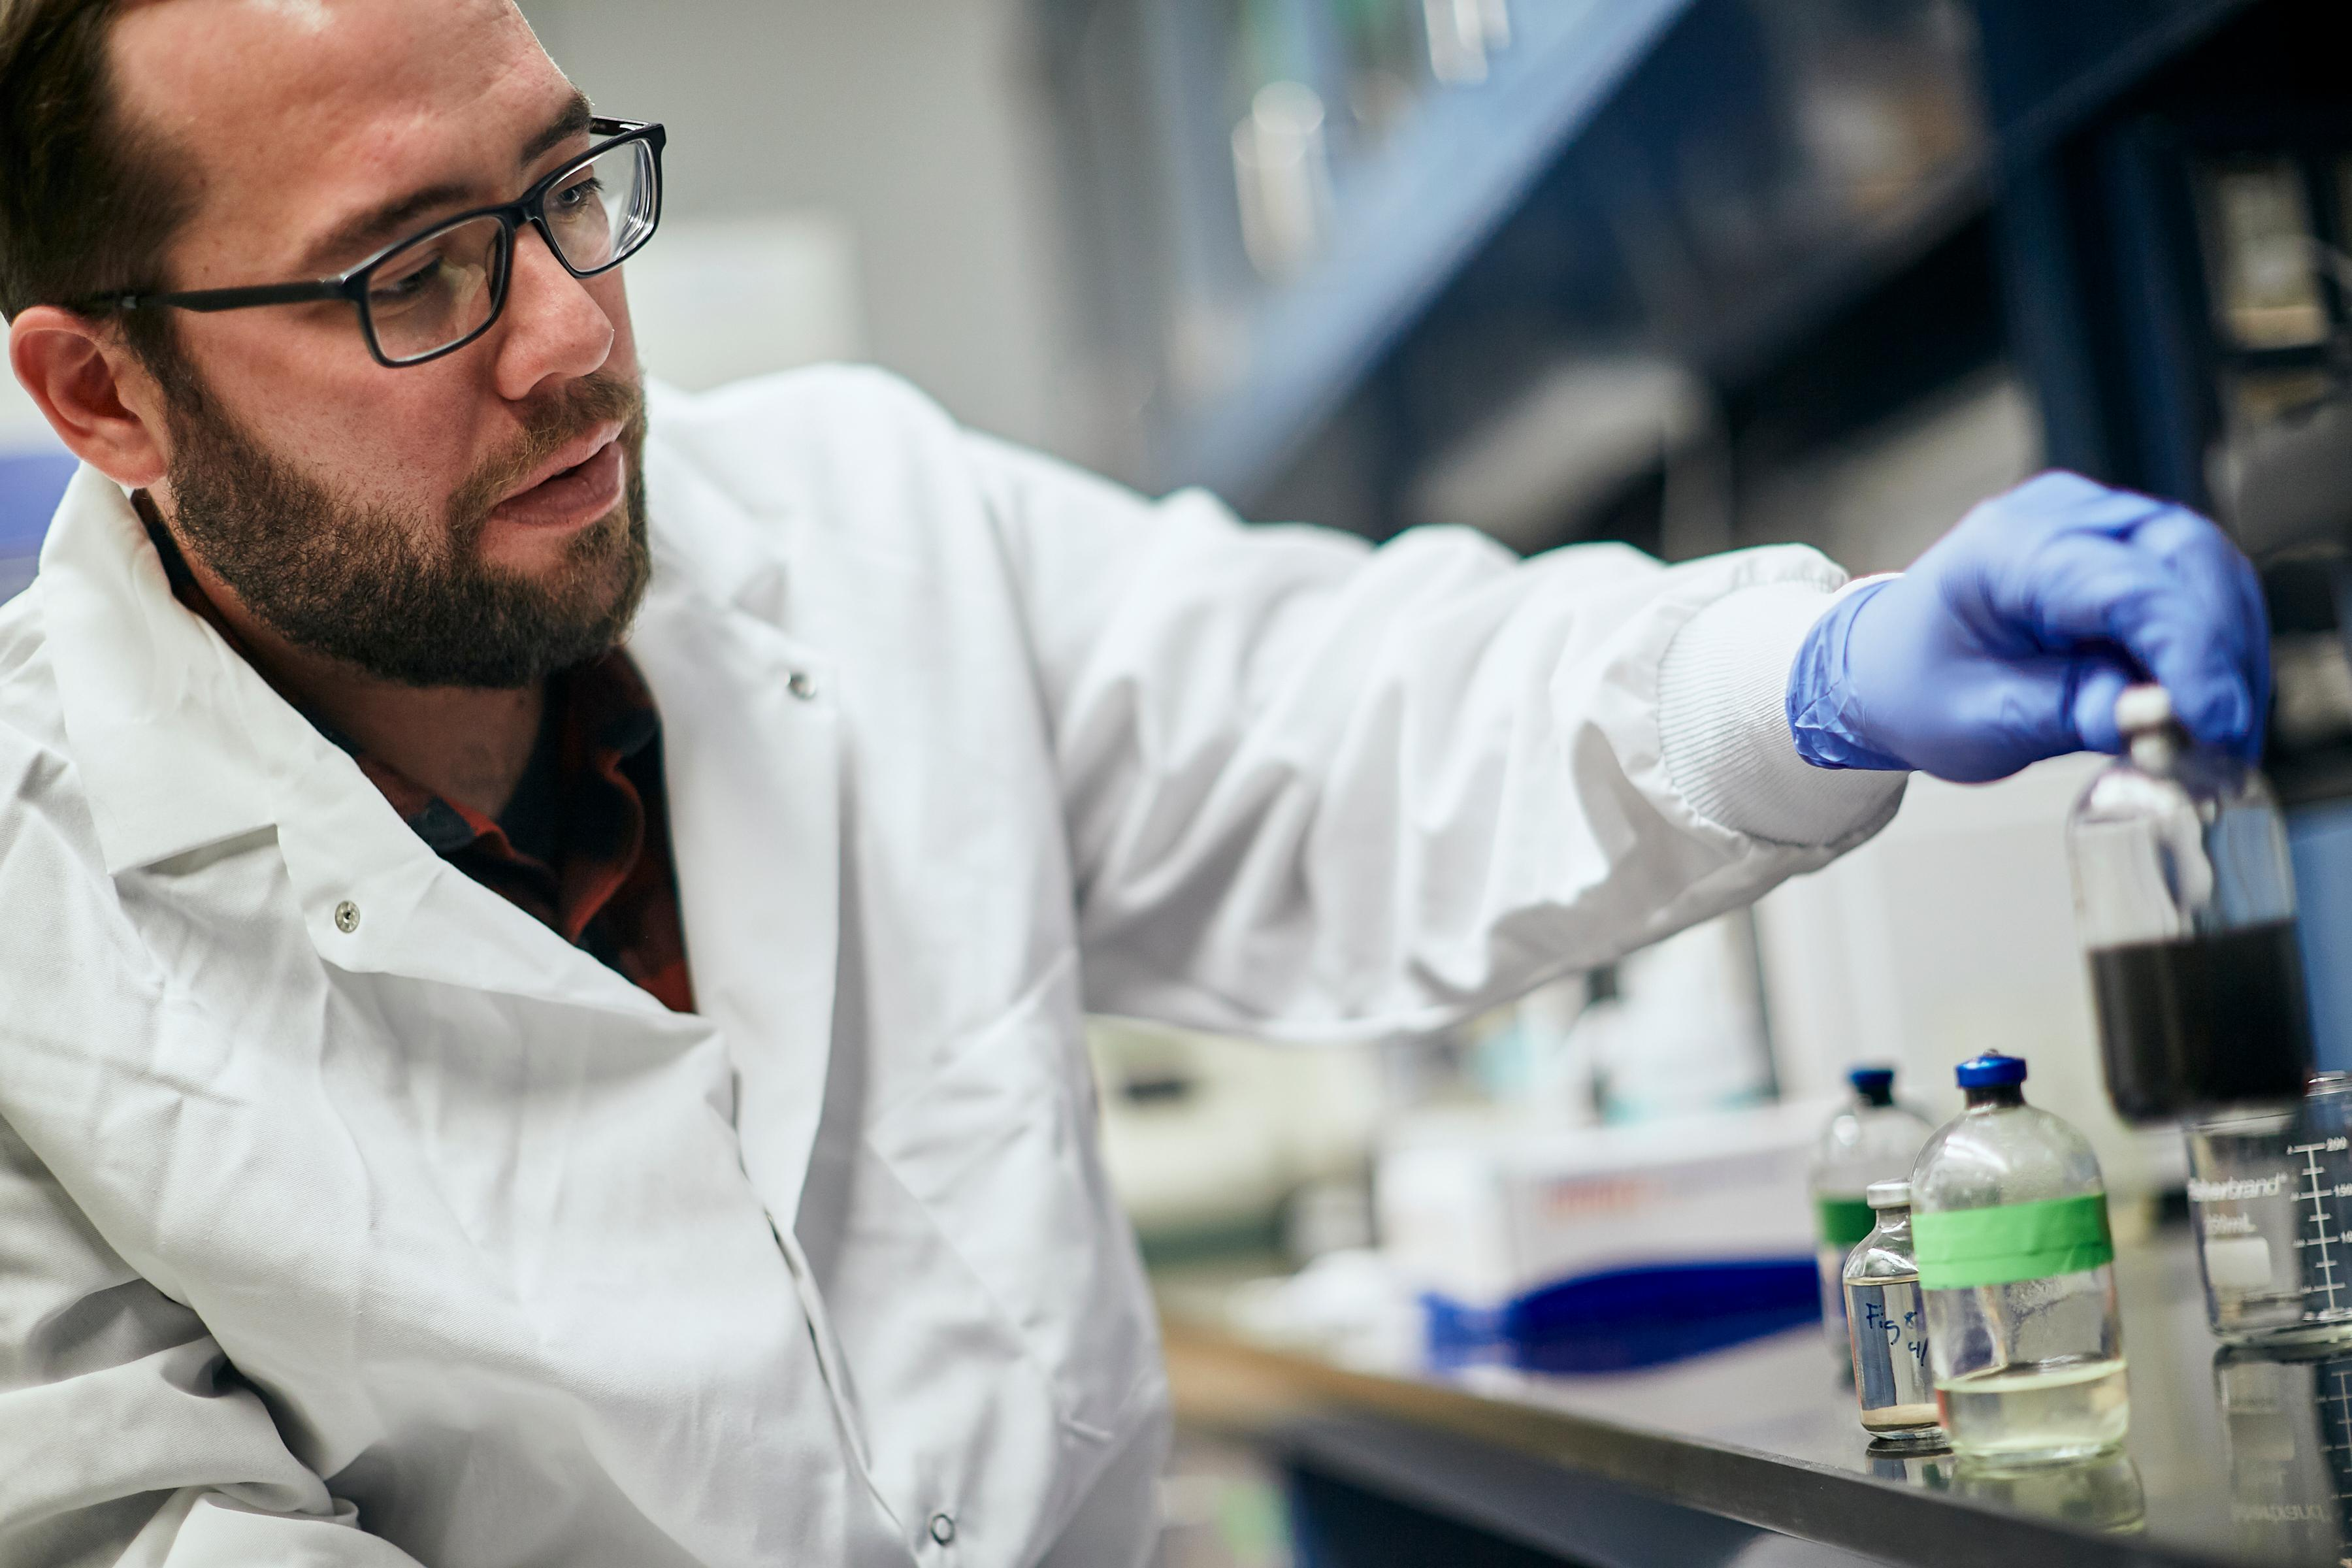 Male researcher working with chemicals in a lab